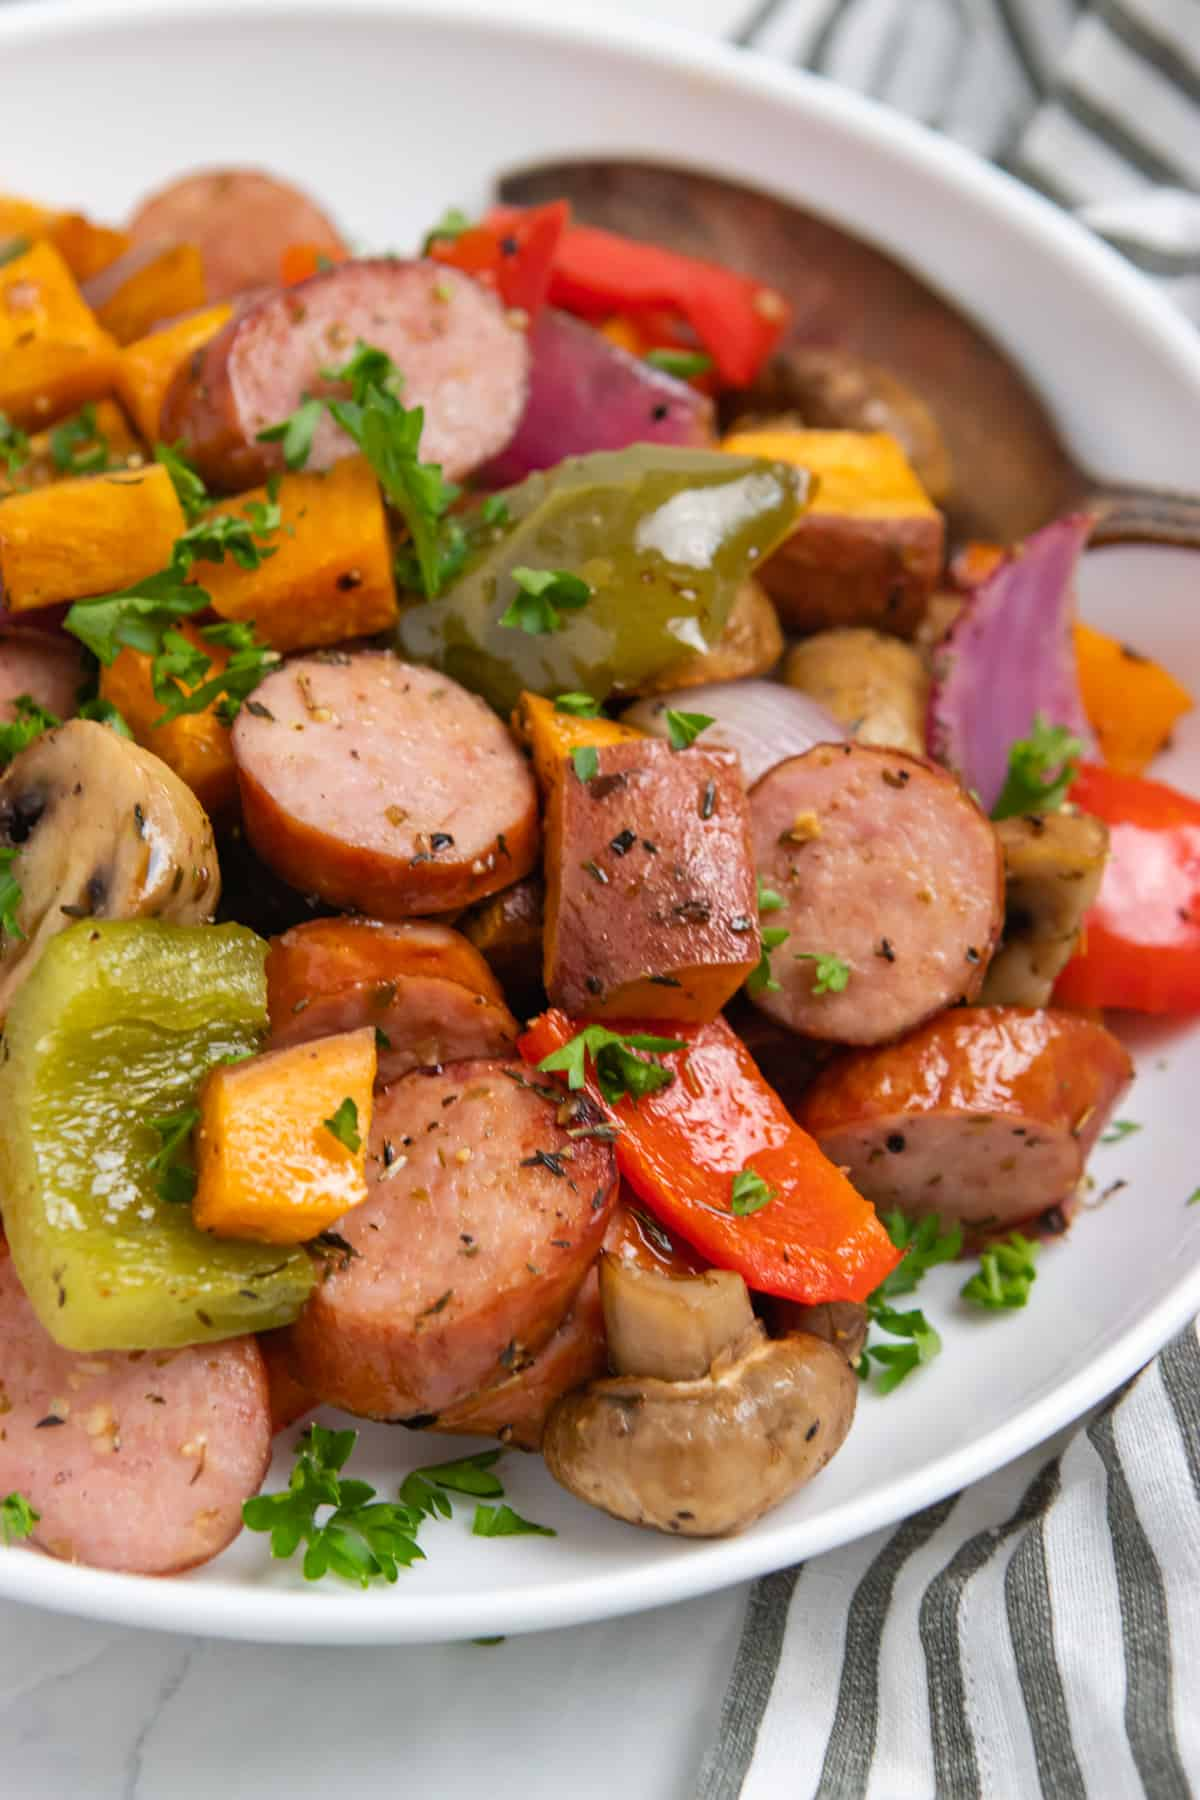 Bowl of cooked sausages, peppers and other veggies with spoon.